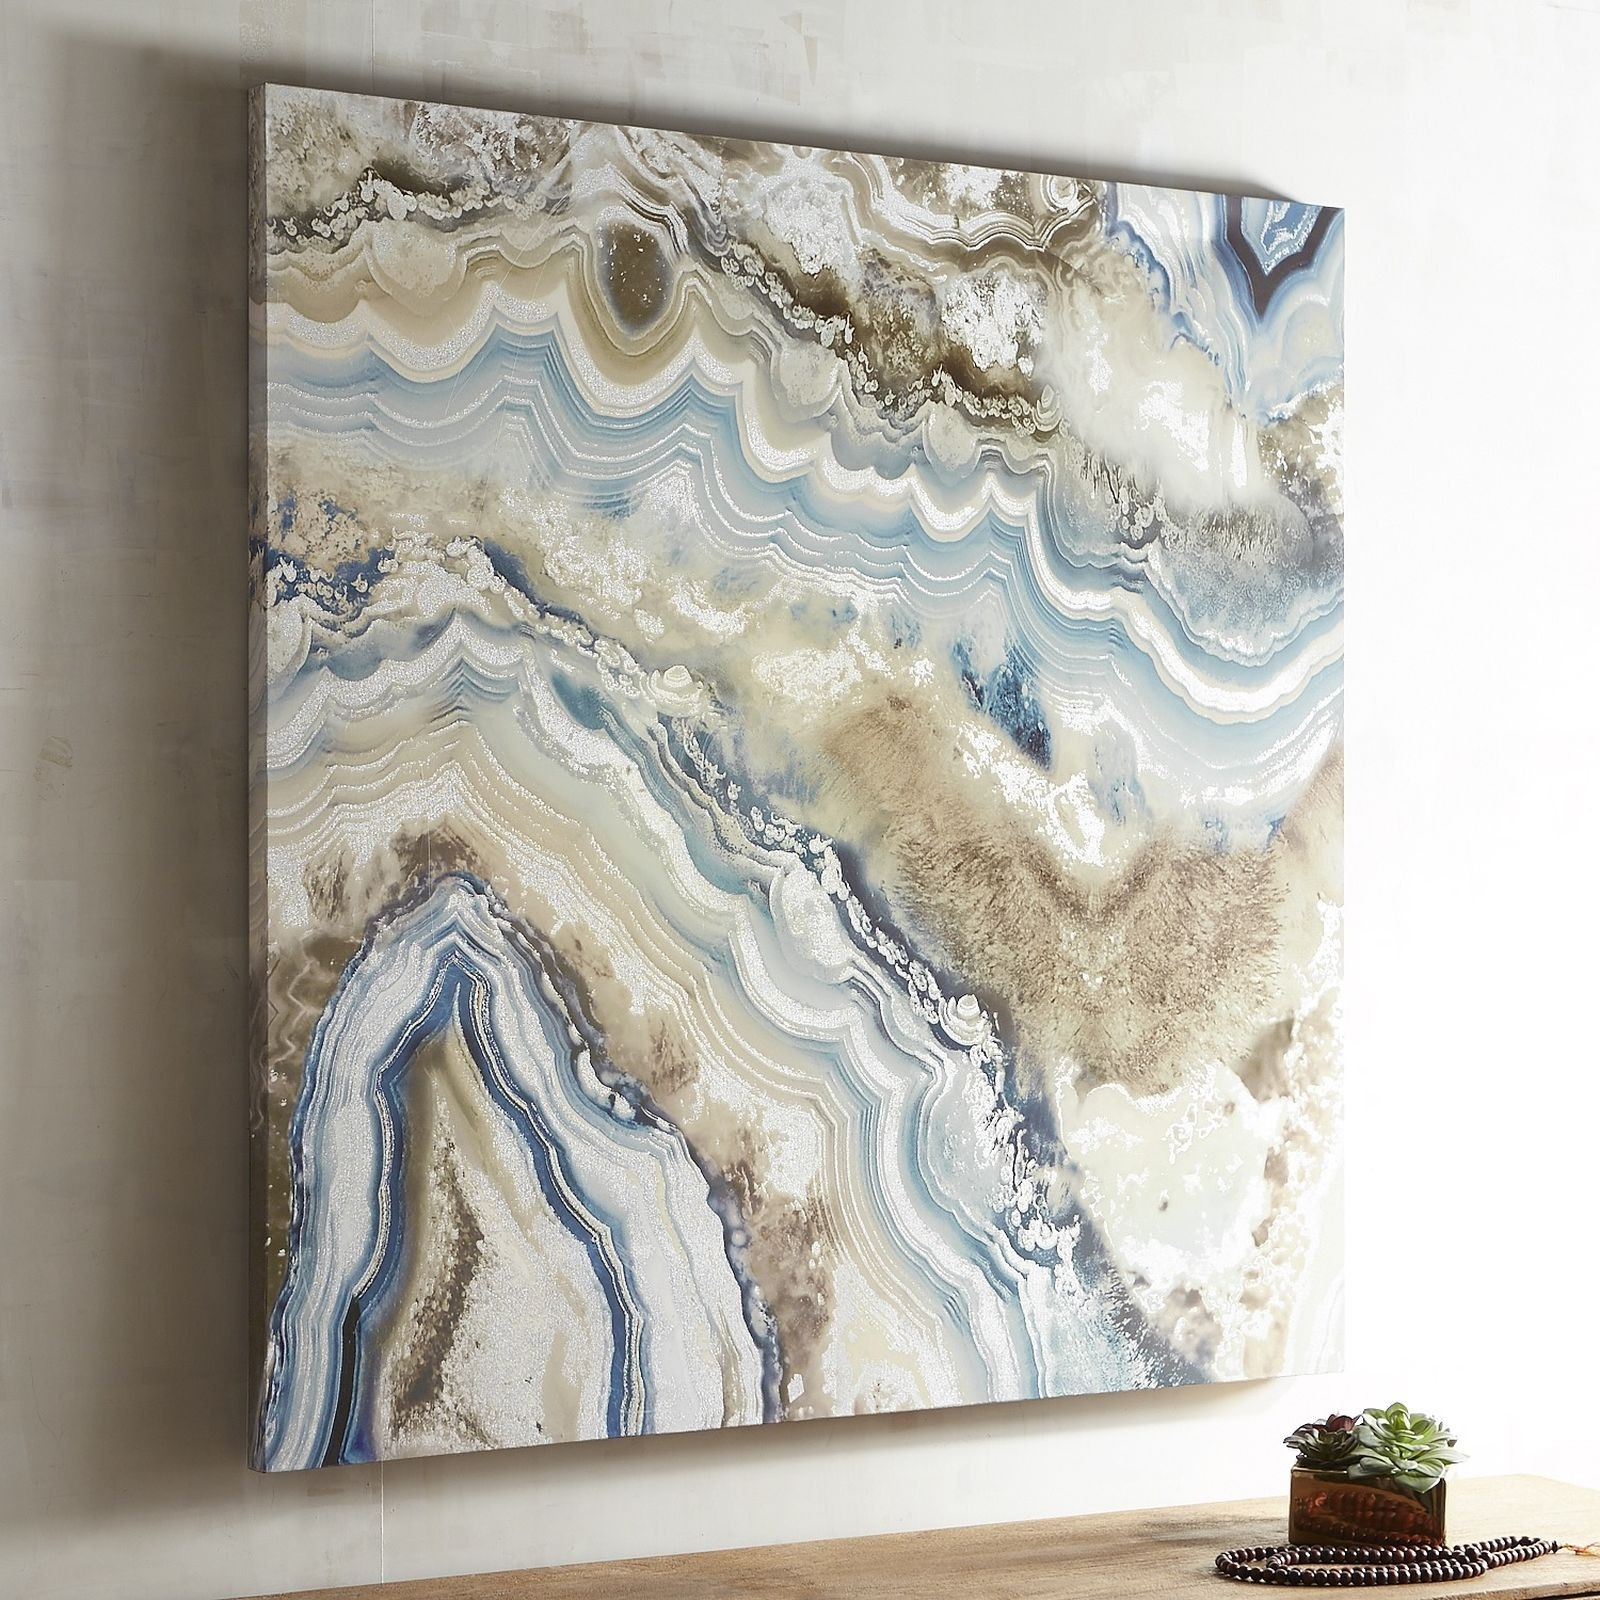 Famous Agate Wall Decor Picture Collection Wall Art Ideas Design Pertaining To Most Recently Released Agate Wall Art (Gallery 4 of 20)